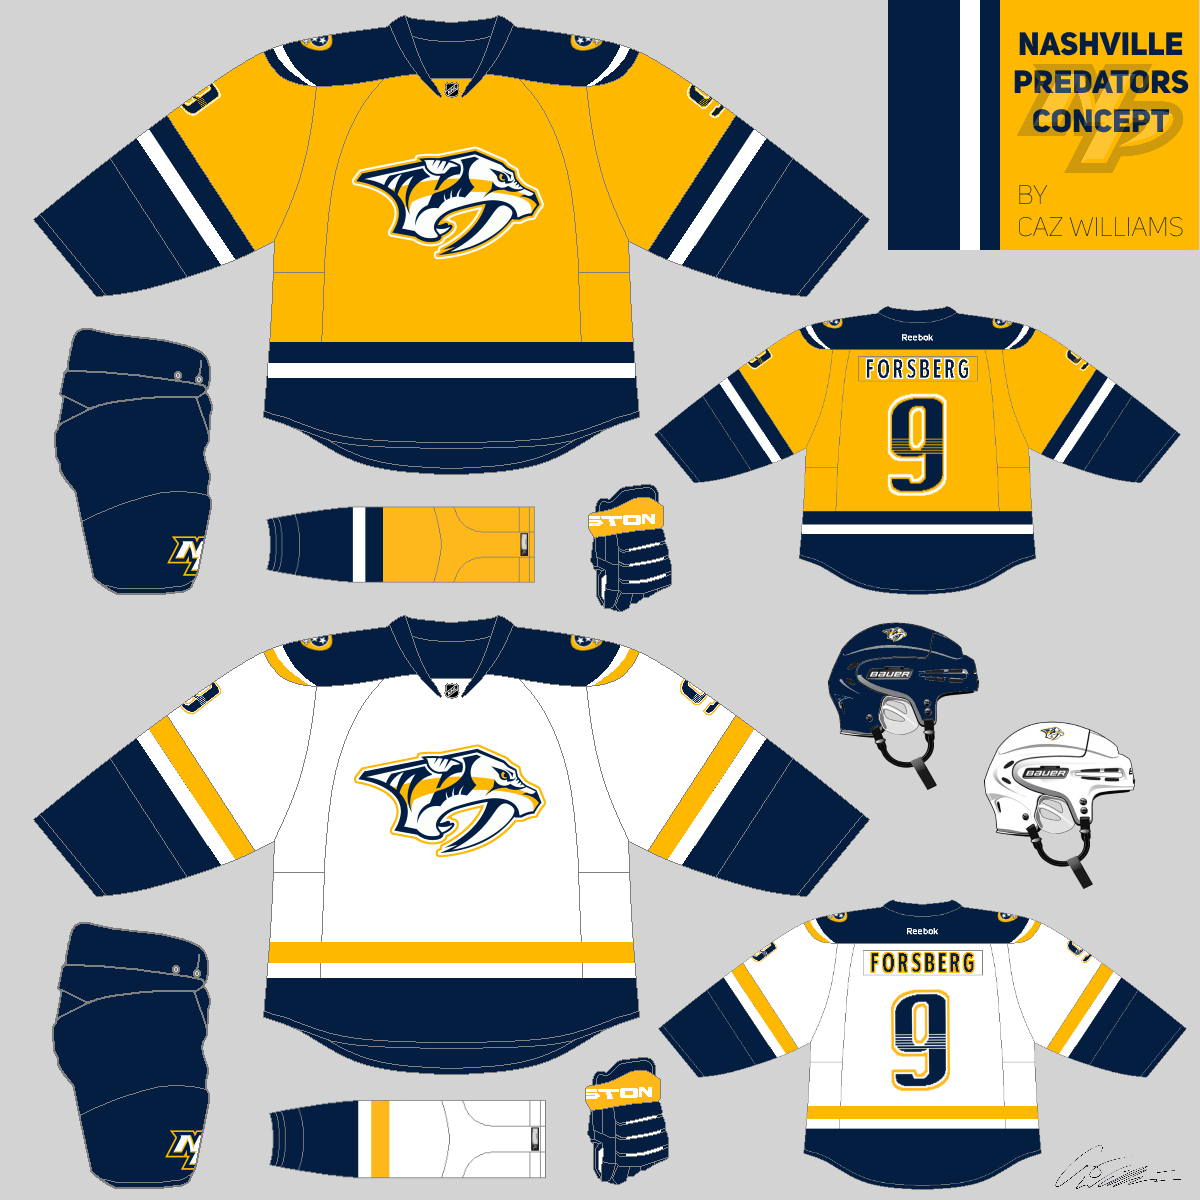 33bc411bb ... Keeping yellow and navy the focus on the jerseys + Simpler